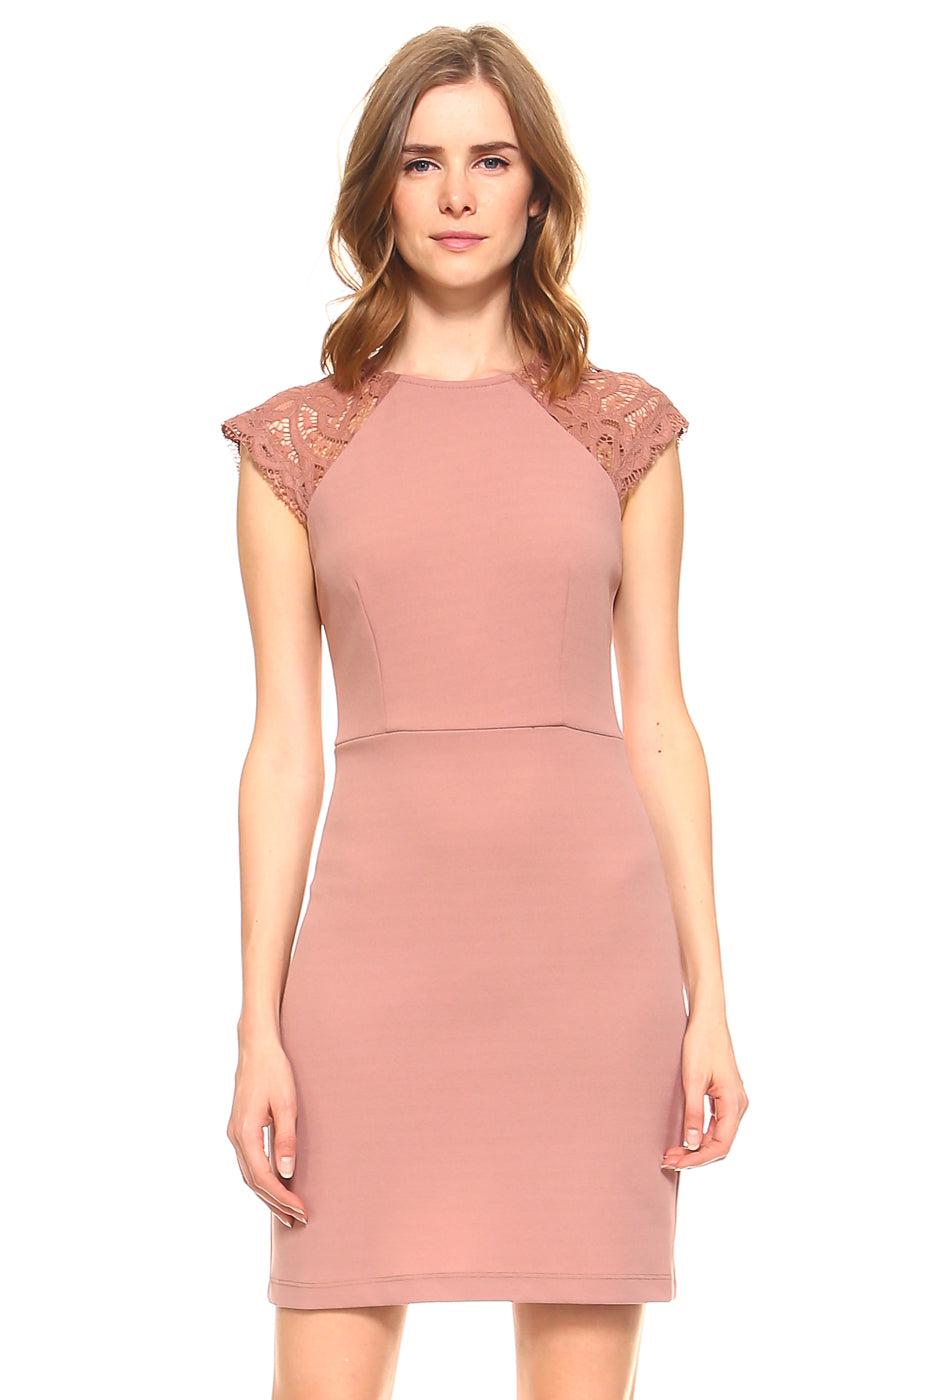 Teeze Me | Cap Sleeve Round Neck Sheath Dress  | Mauve - Teeze Me